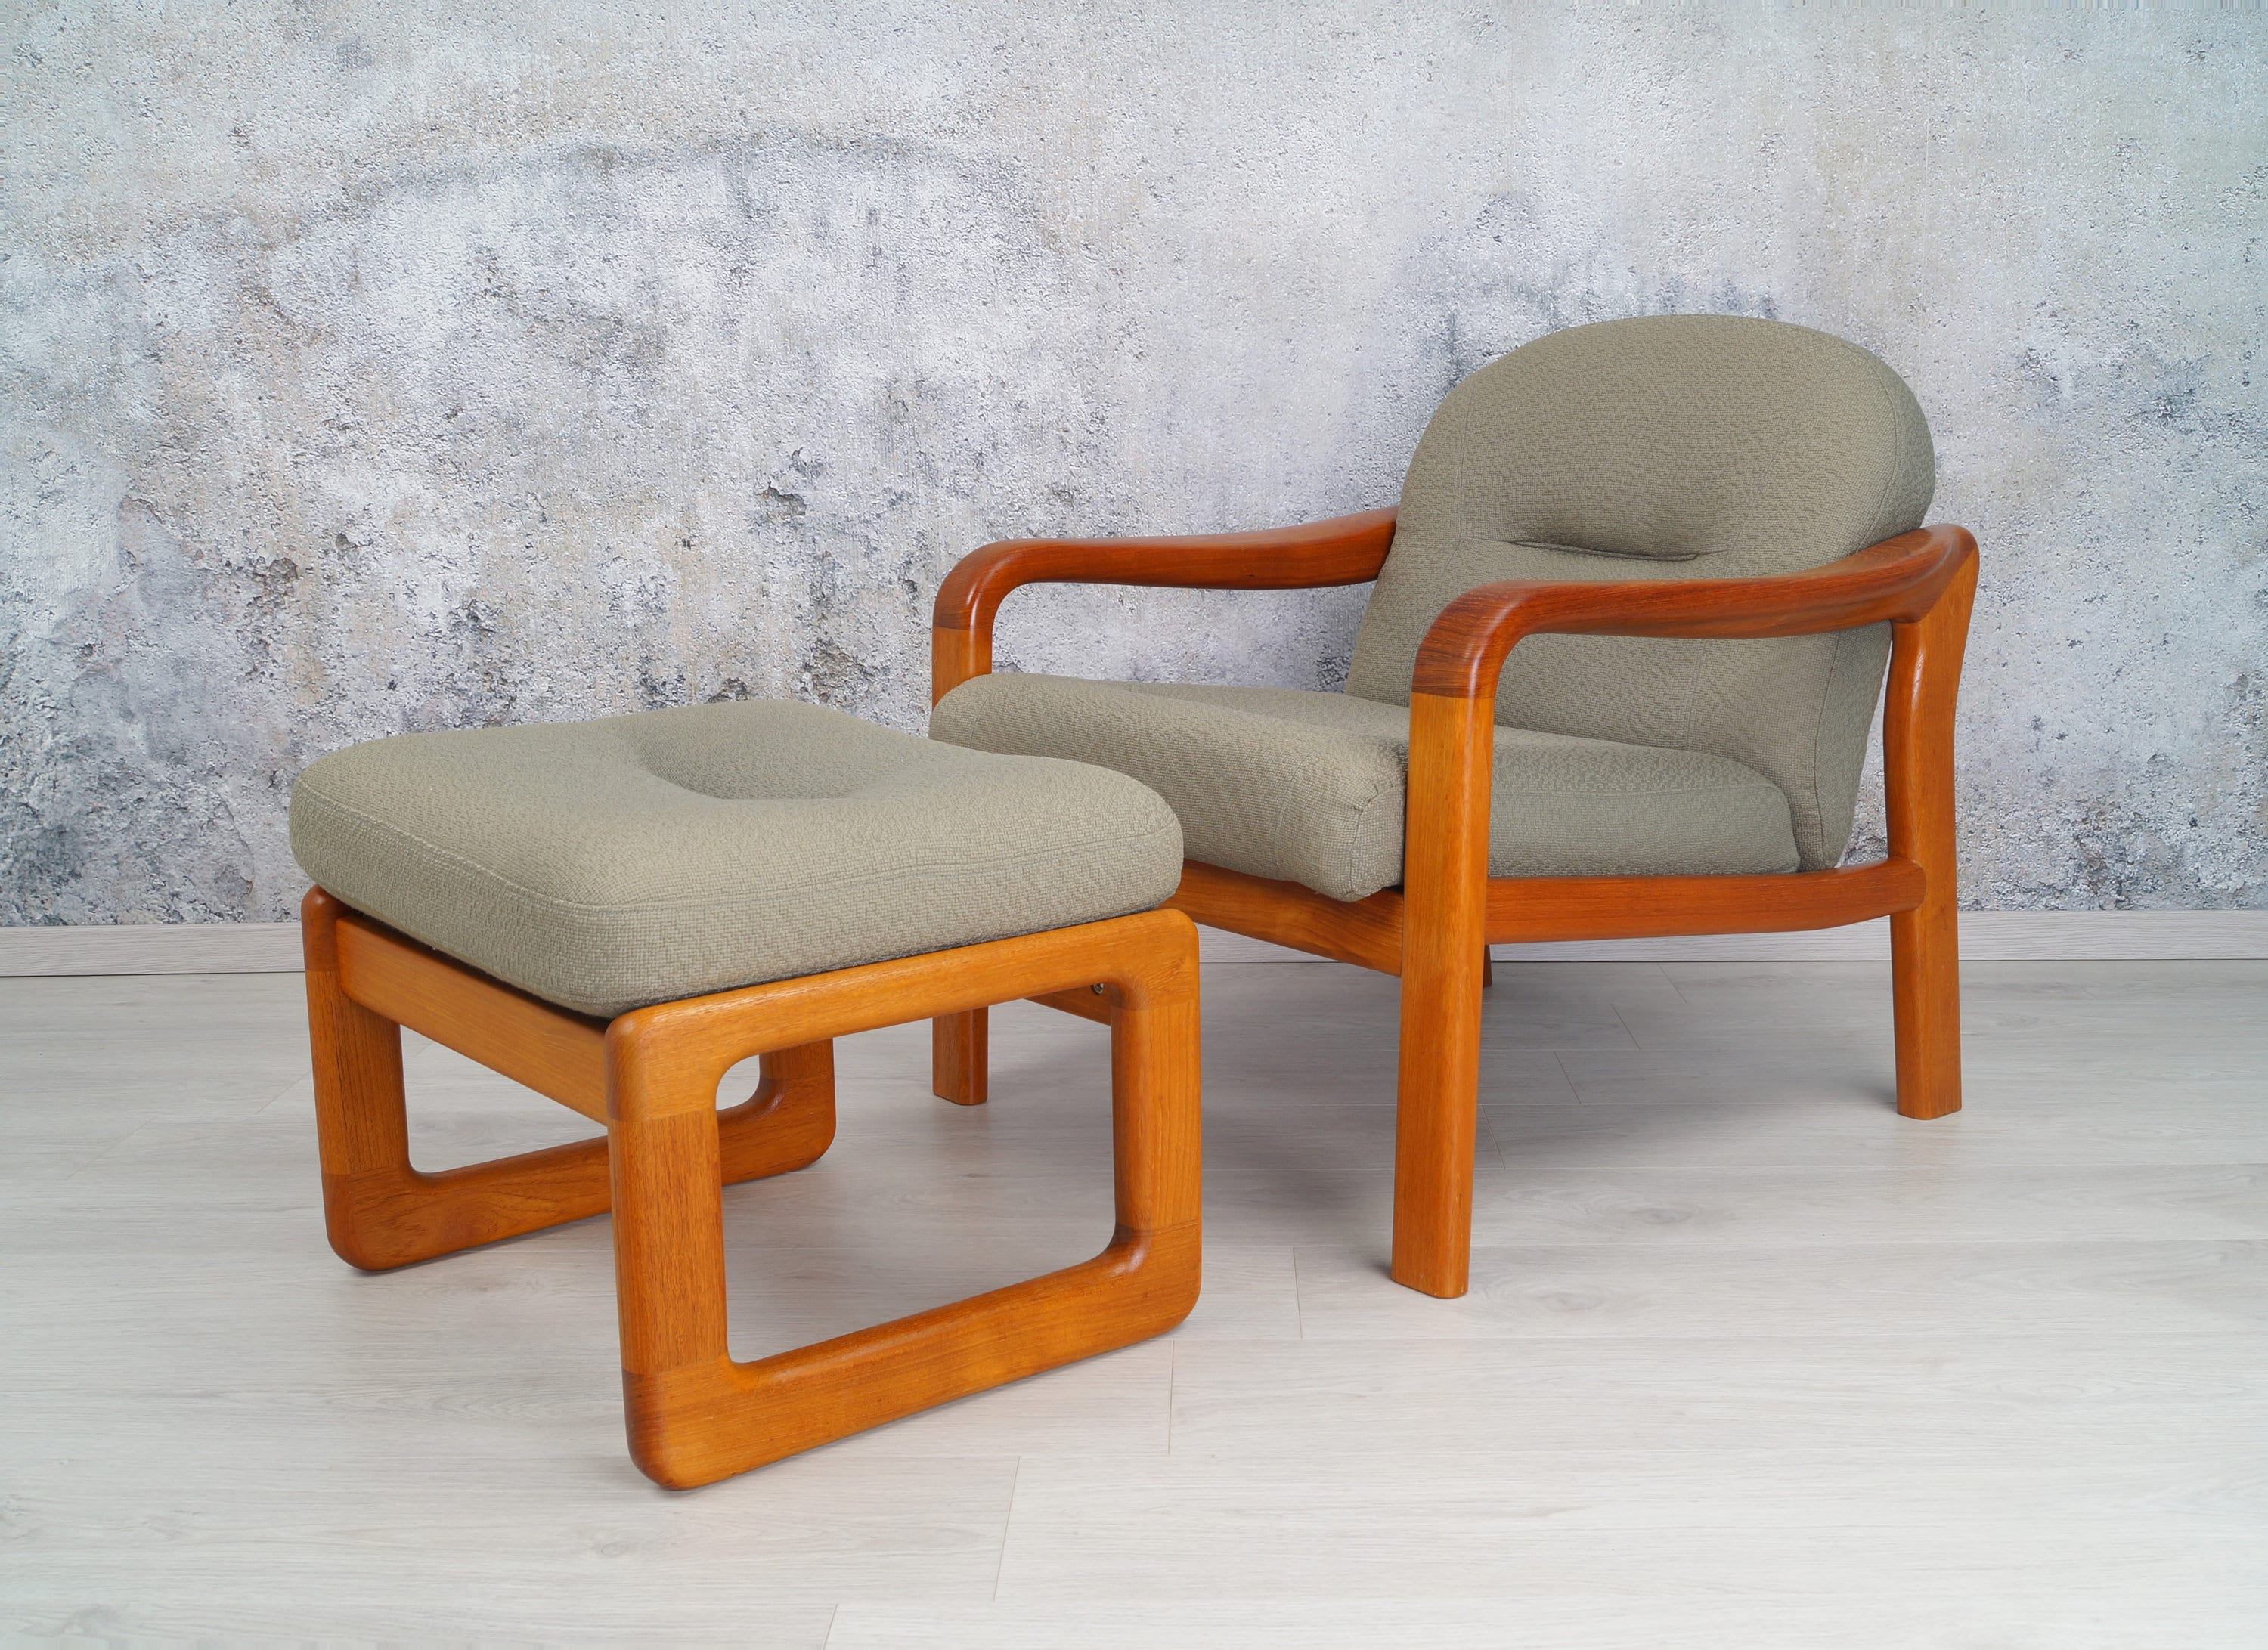 Teak Sessel Danish Teak Sessel Mit Hocker 60er 70er Jahre Midcentury Danish Design Holstebro Relax Chair